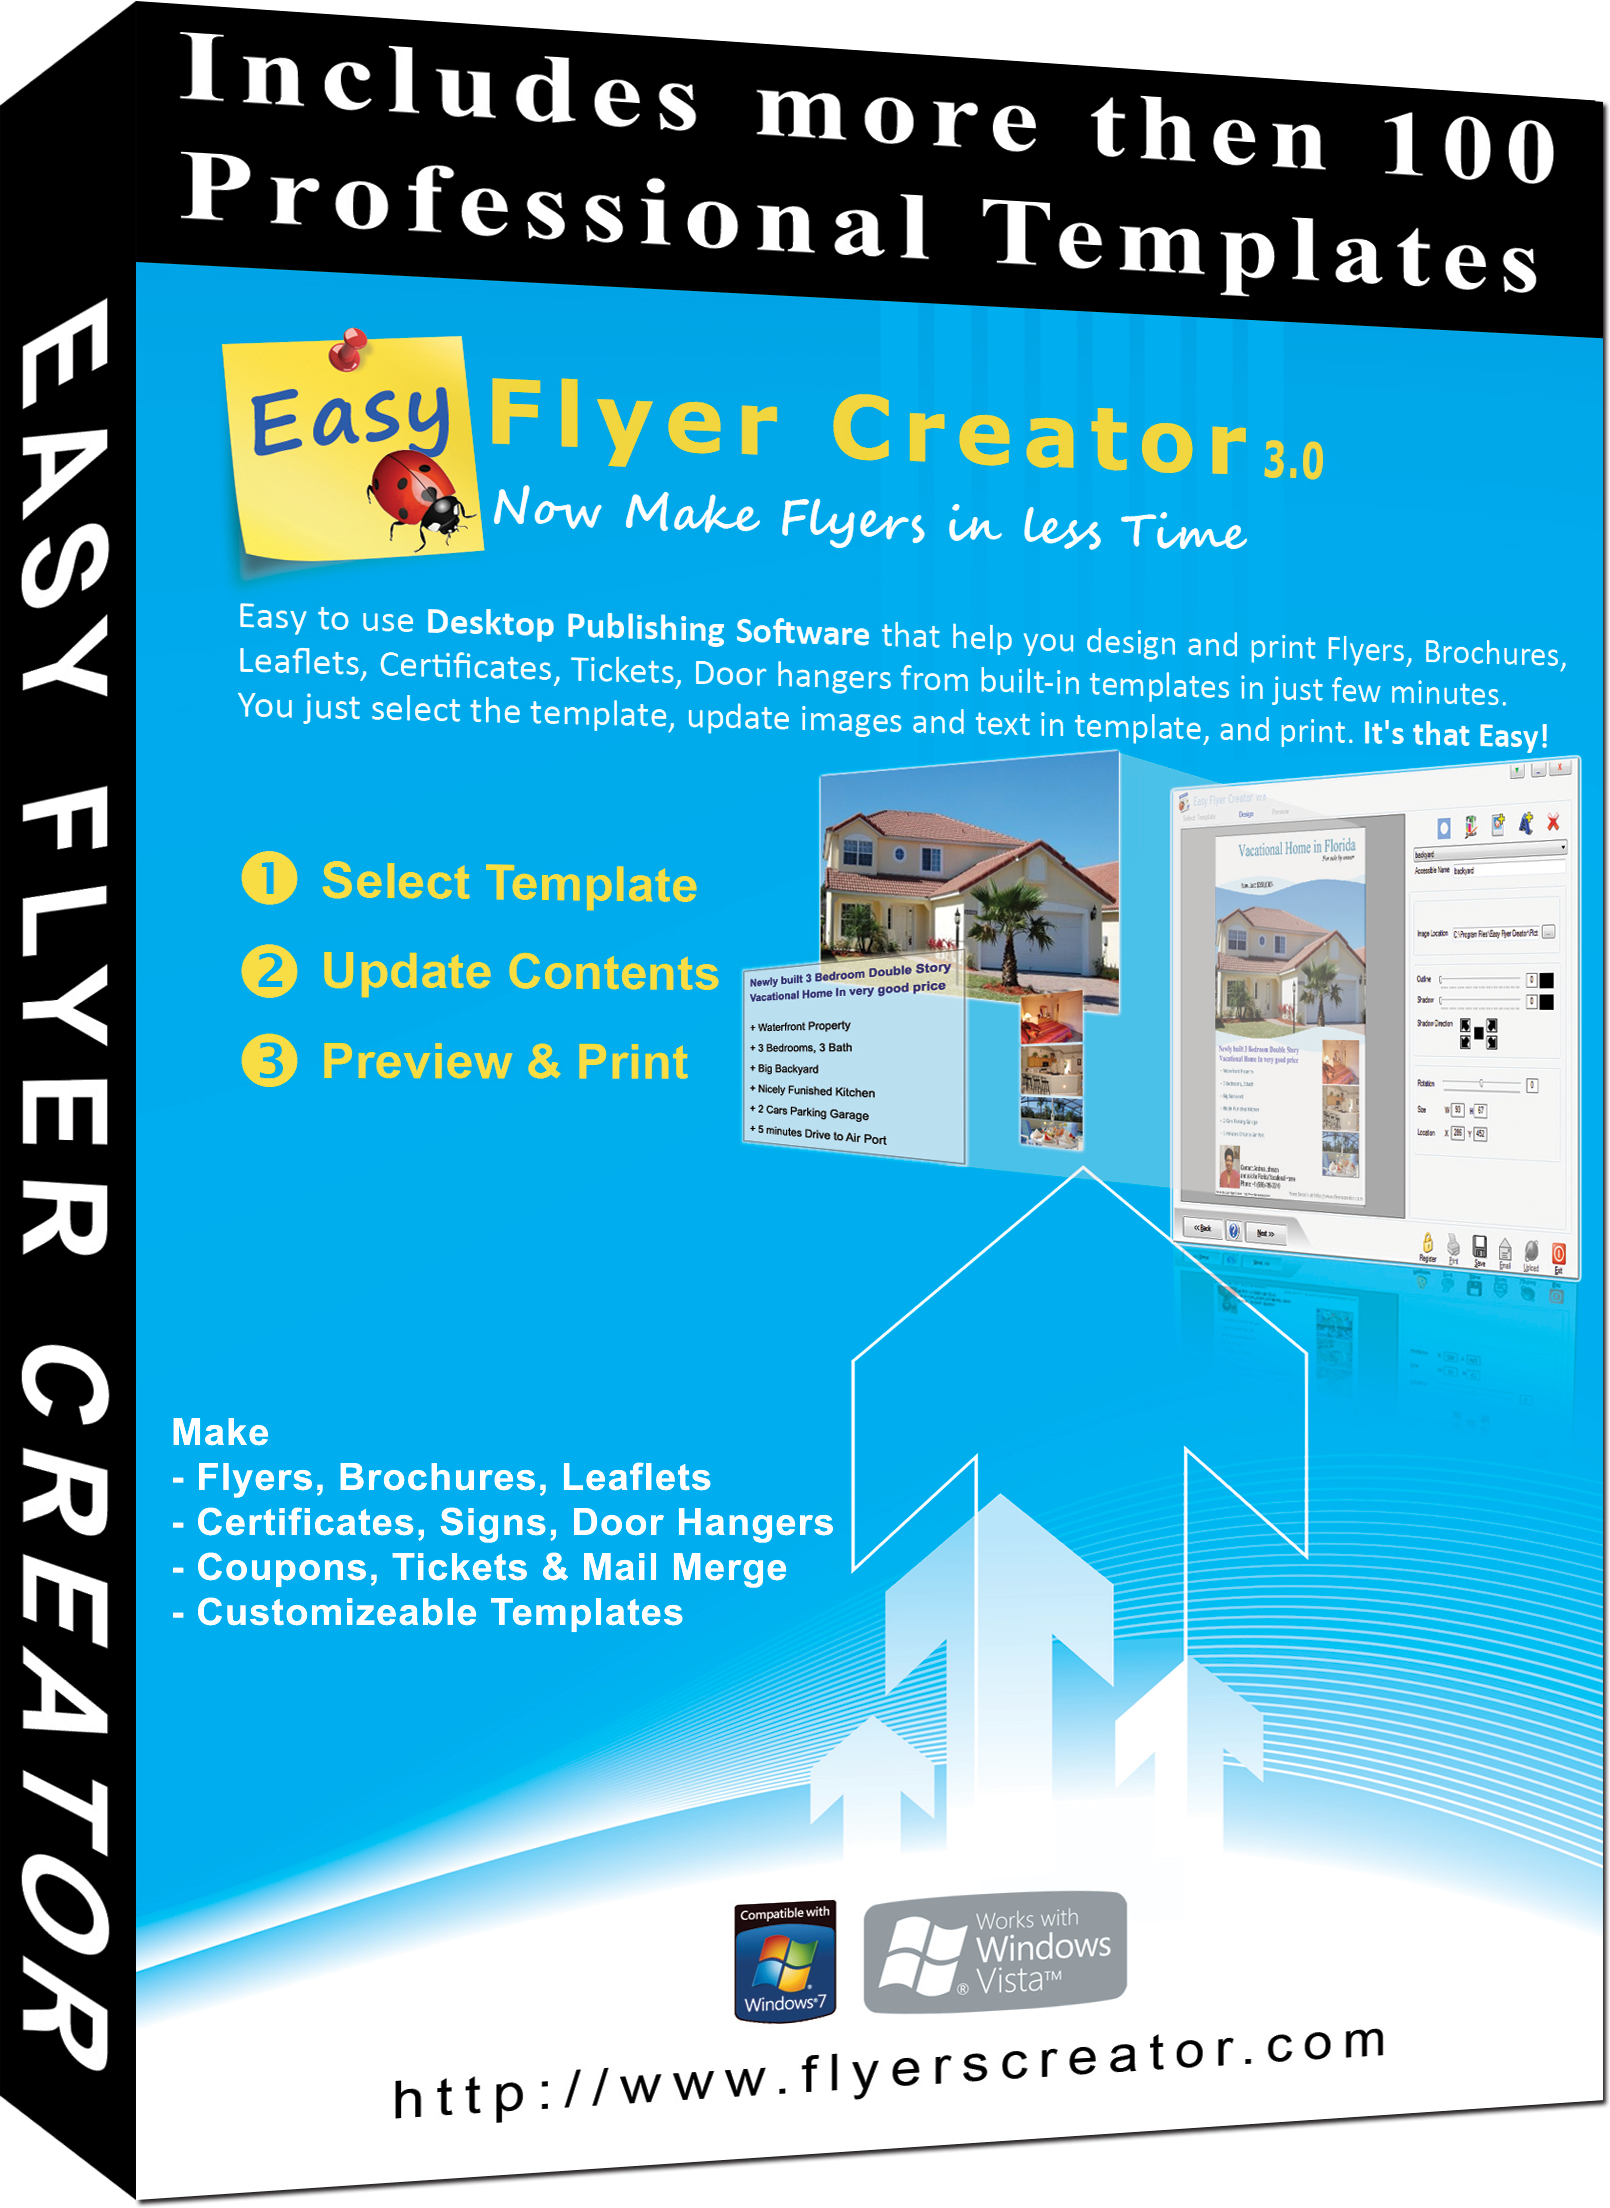 brochure templates maker - easy flyer creator 3 0 to design business flyers